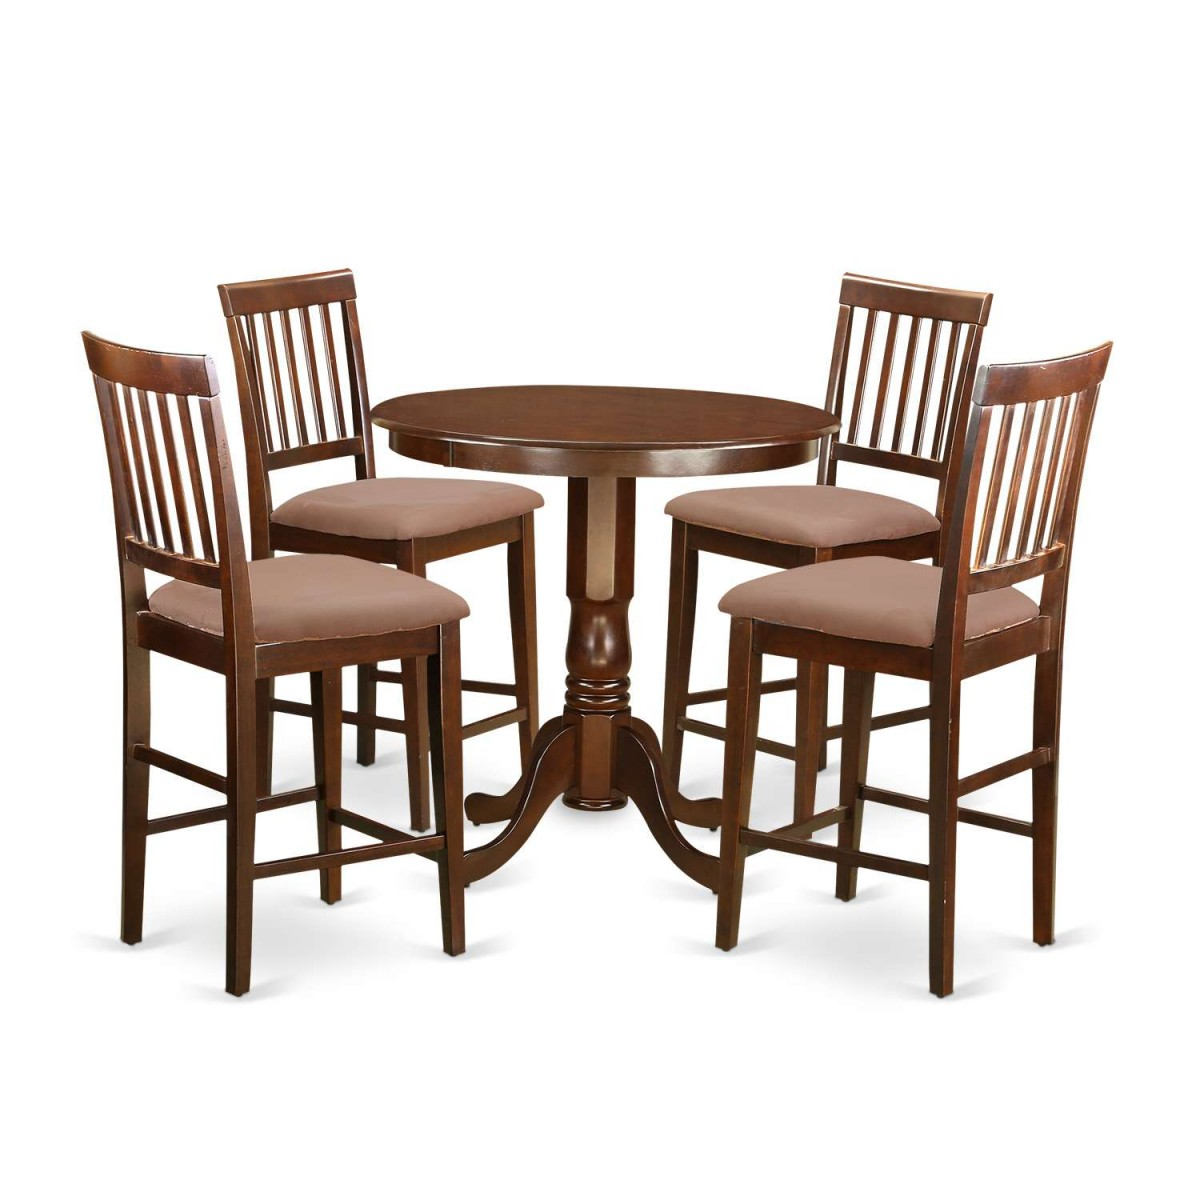 East West Furniture Jackson 5 Piece Counter Height Dining